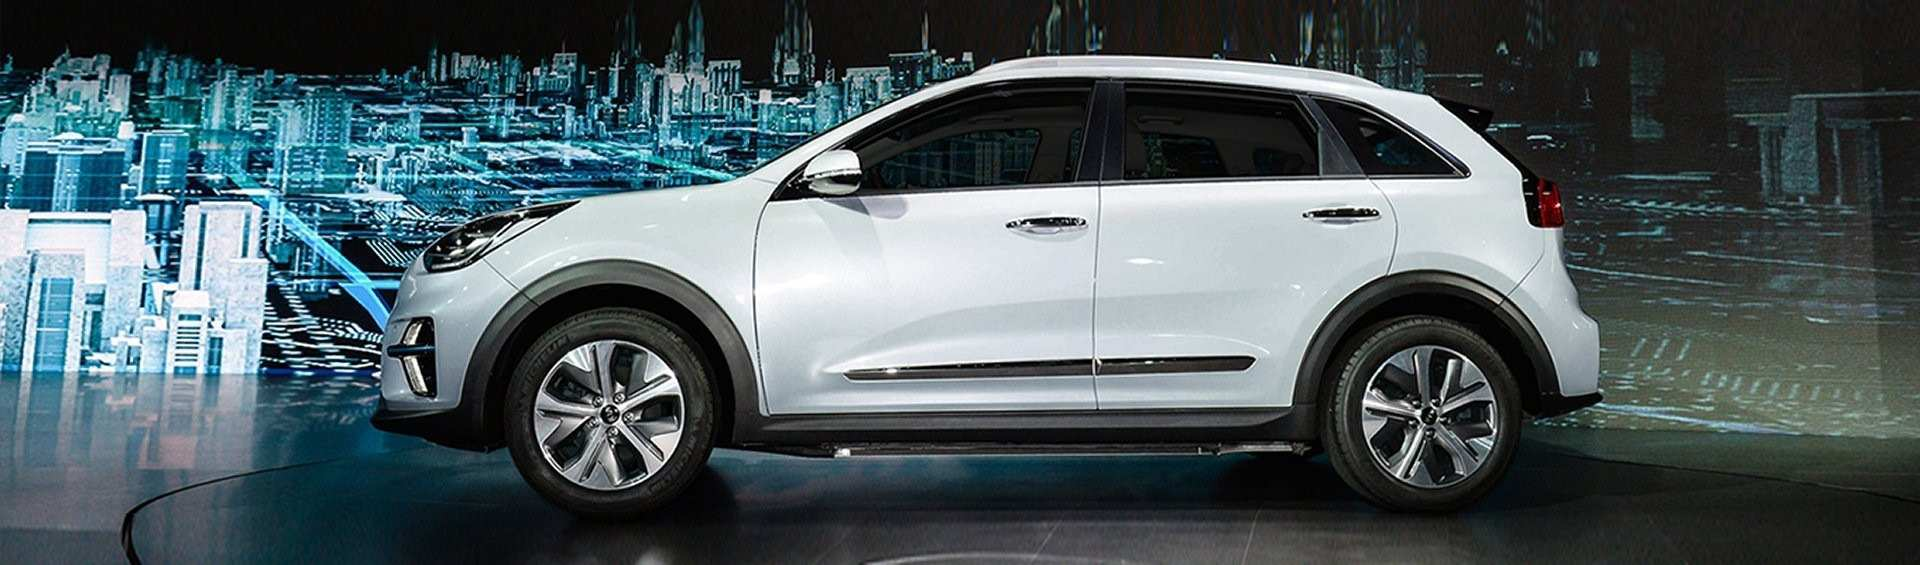 75 Great The Kia Niro 2019 Canada Redesign New Review with The Kia Niro 2019 Canada Redesign